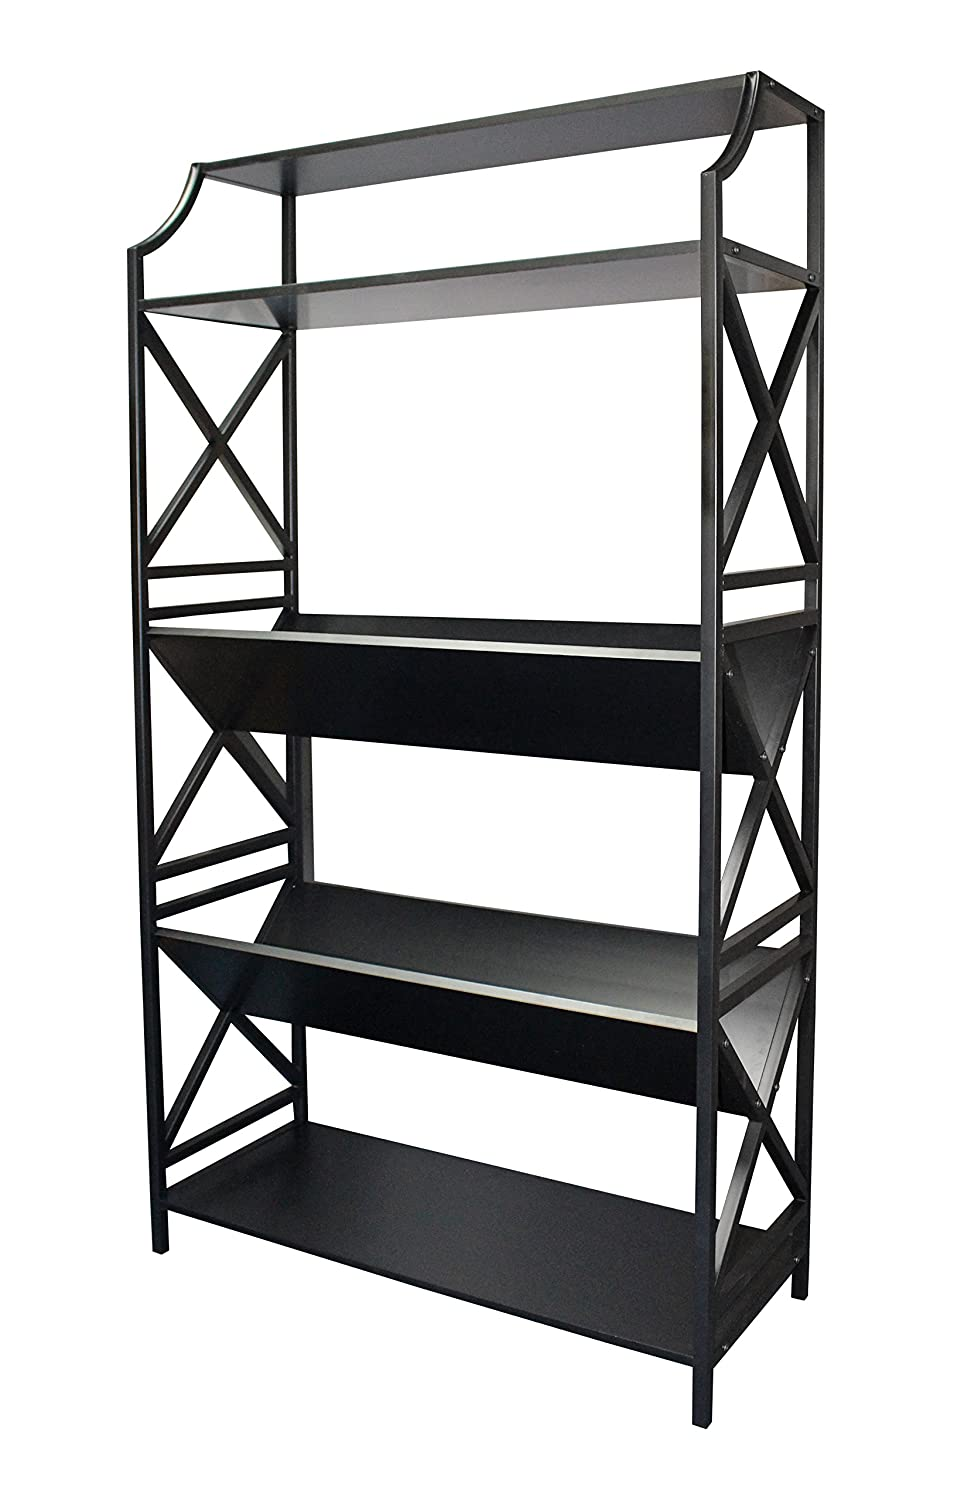 eHemco 5 Shelf Metal Bookcase with 2 Shelves on a Slant v-Shape and X Sides